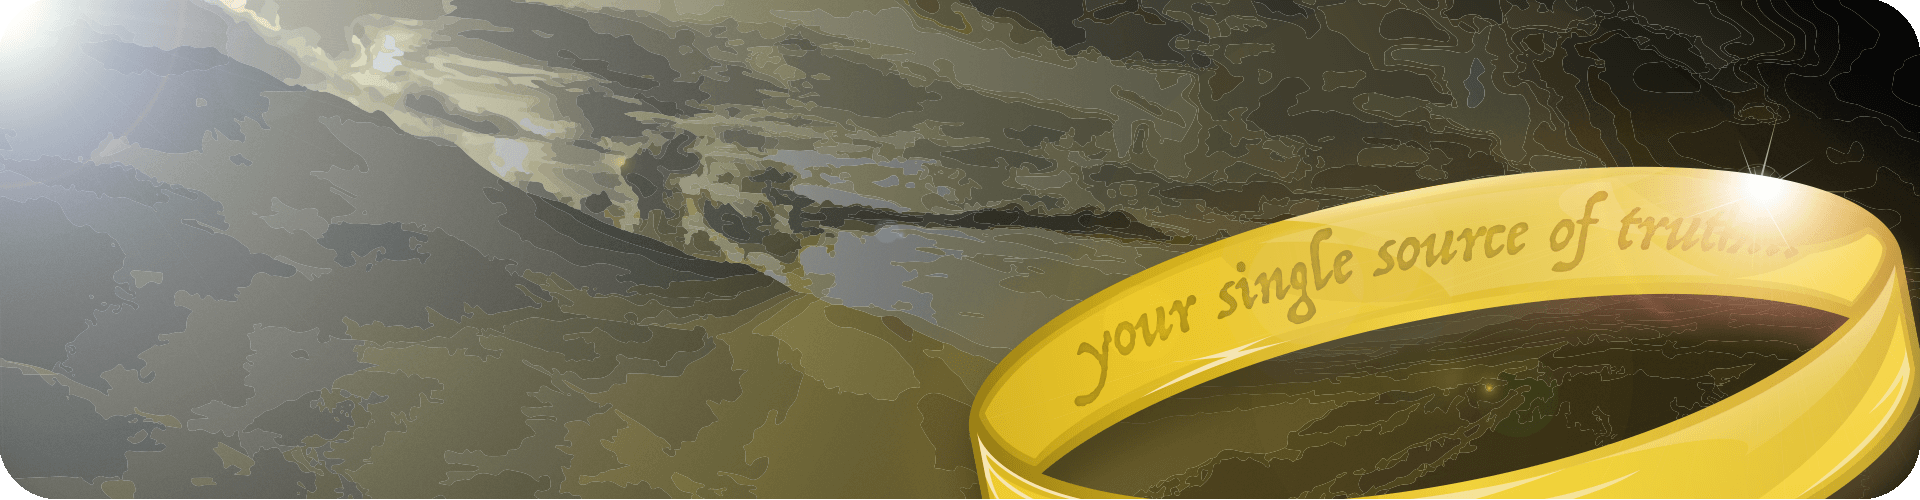 your single source of truth lord of the rings style ring and mountains